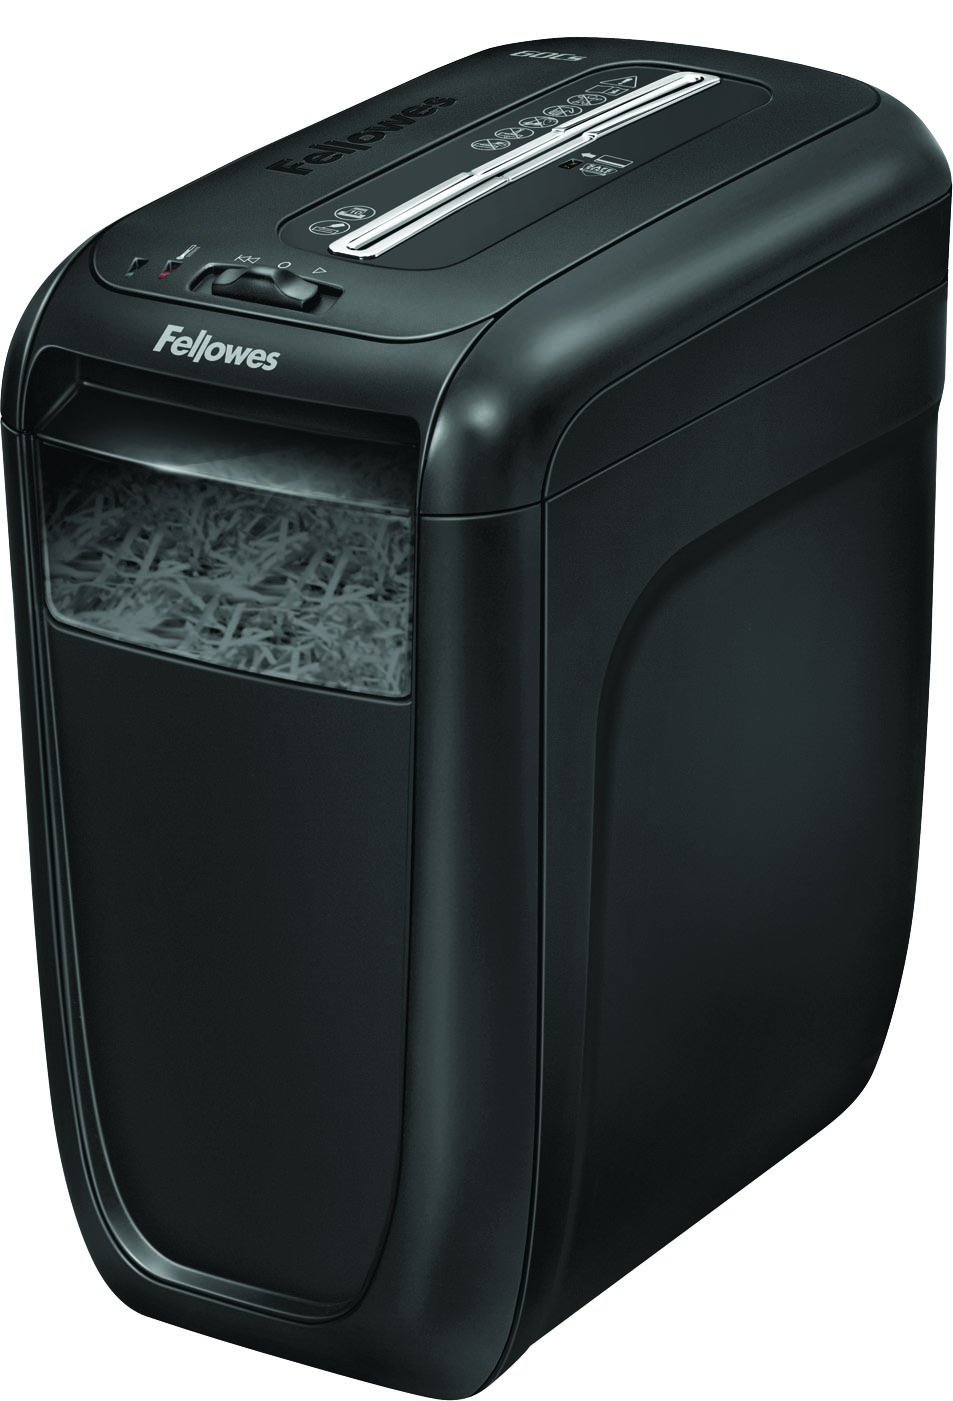 Fellowes Powershred 4606004 60Cs Cross-Cut Shredder, Black Fellowes Canada Ltd Office Equipment